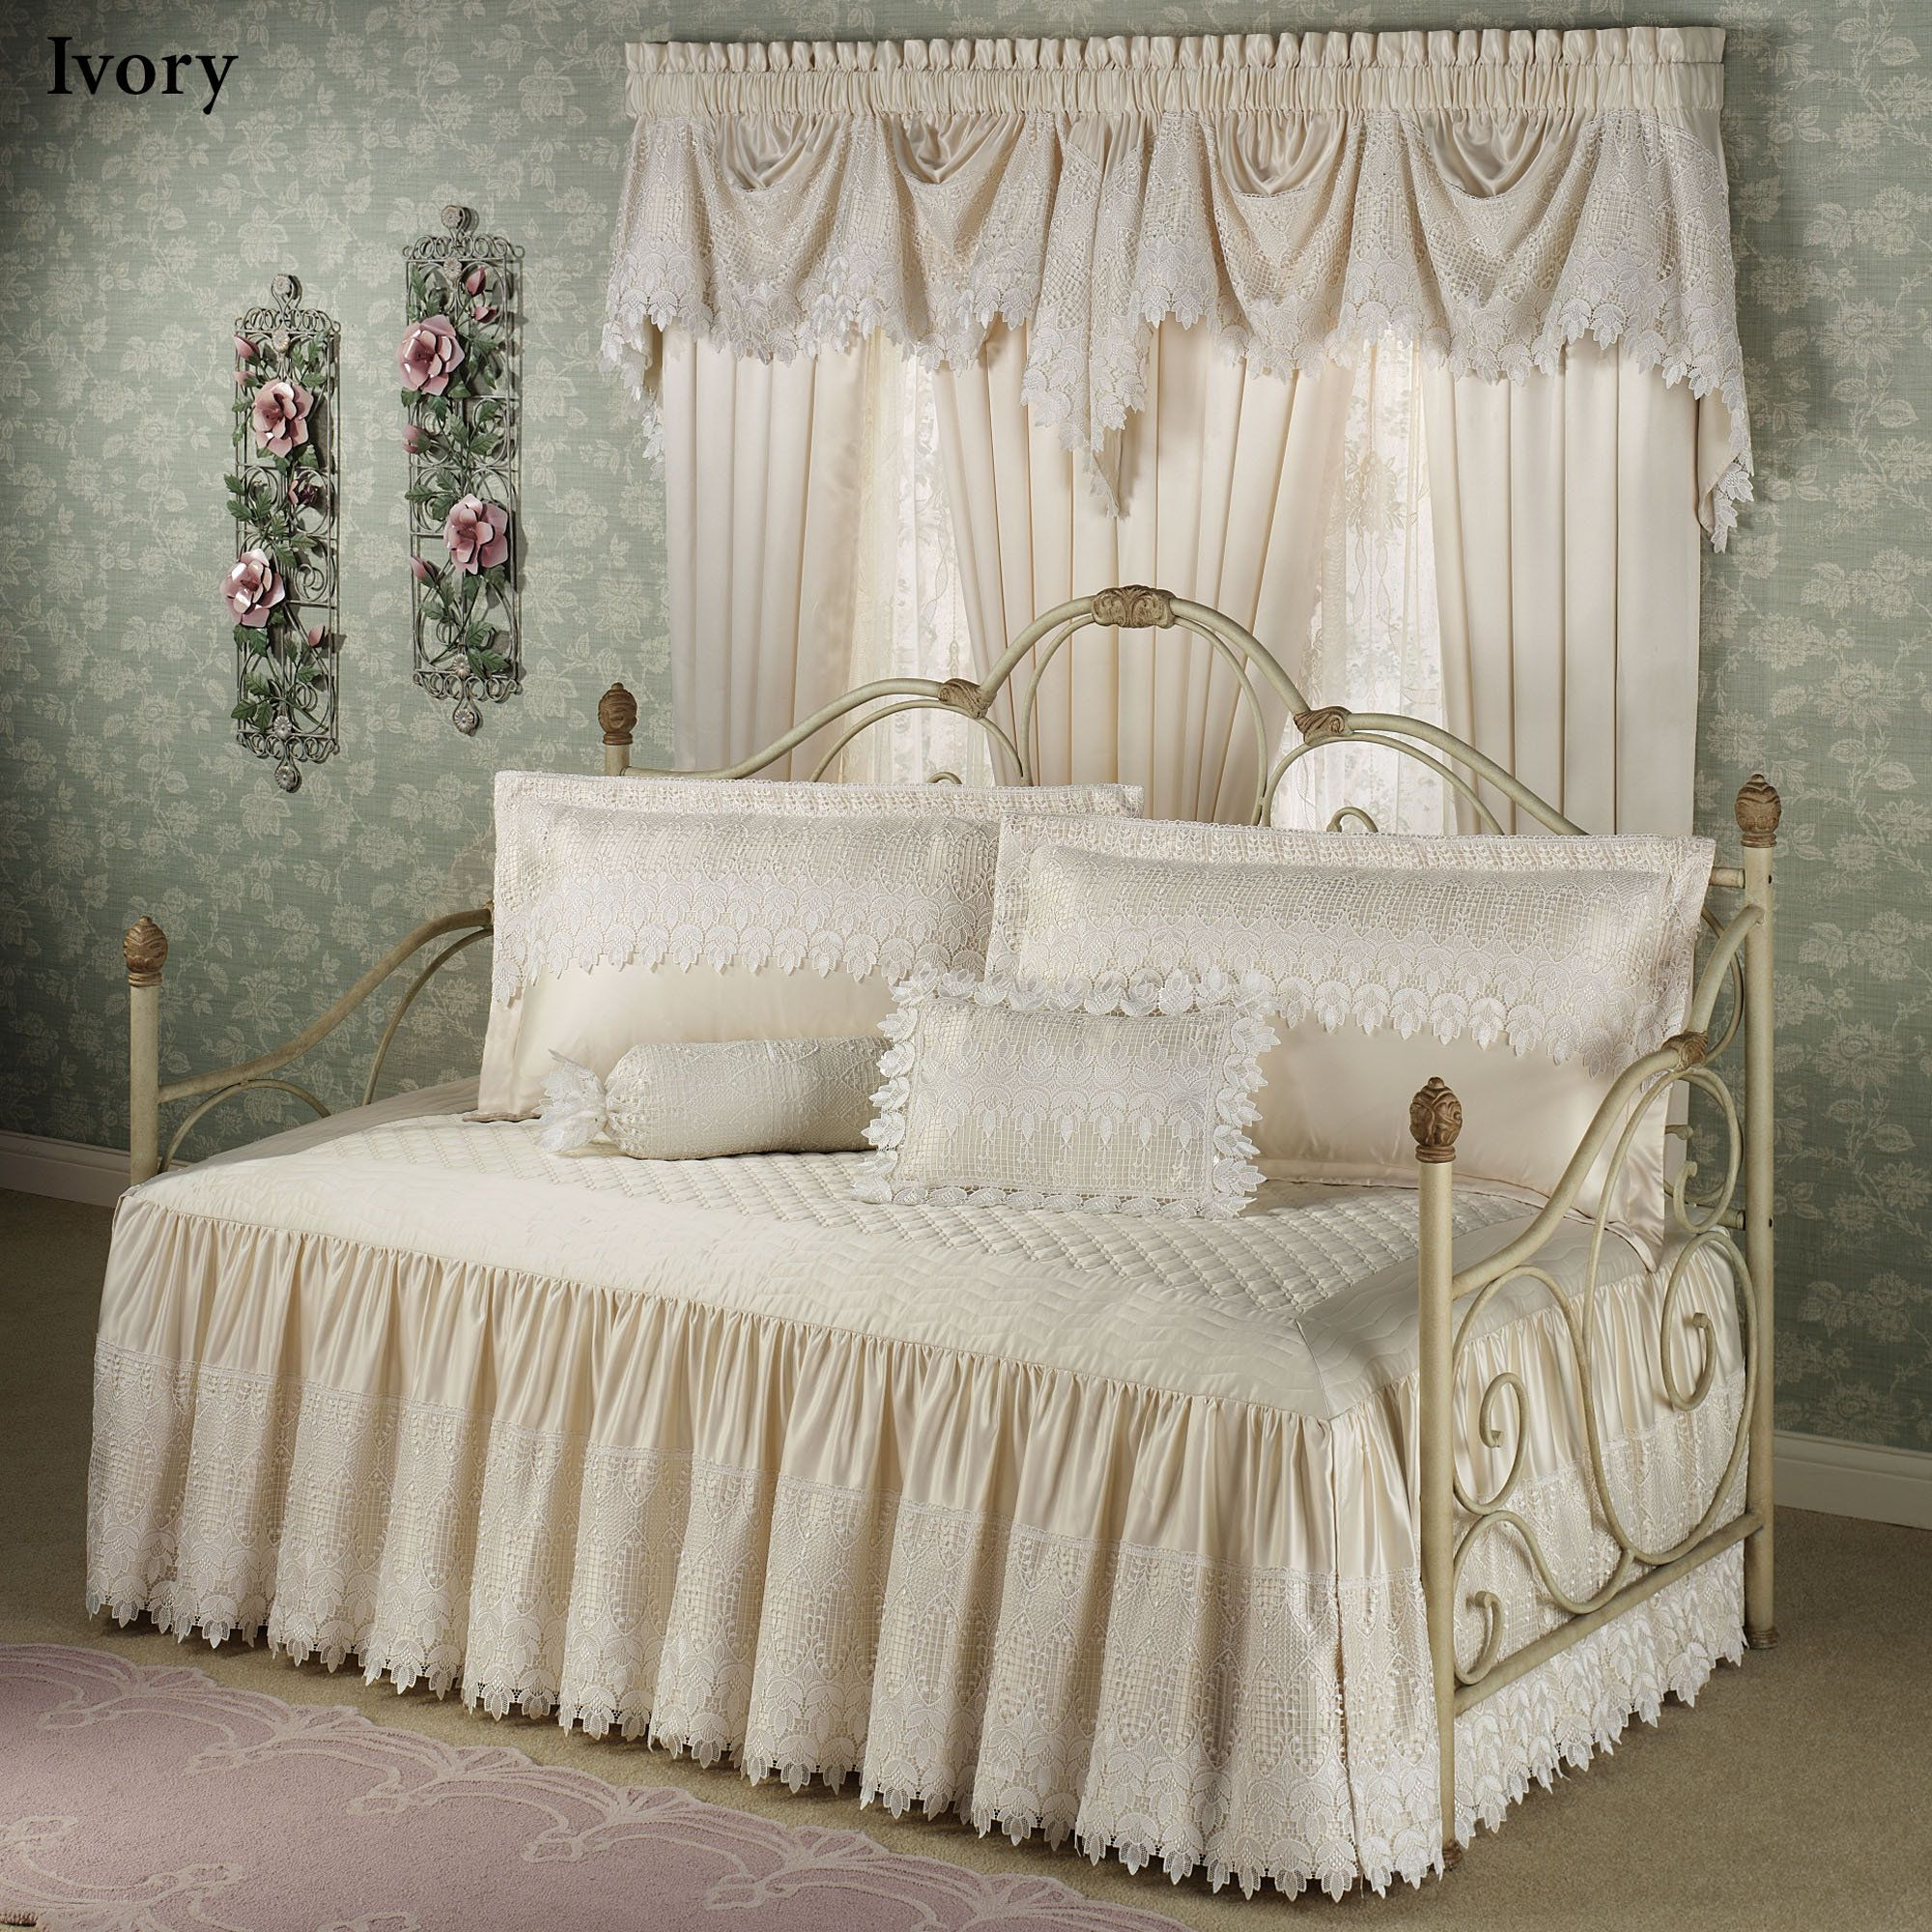 Trousseau Lace Daybed Bedding upstairs bedroom library